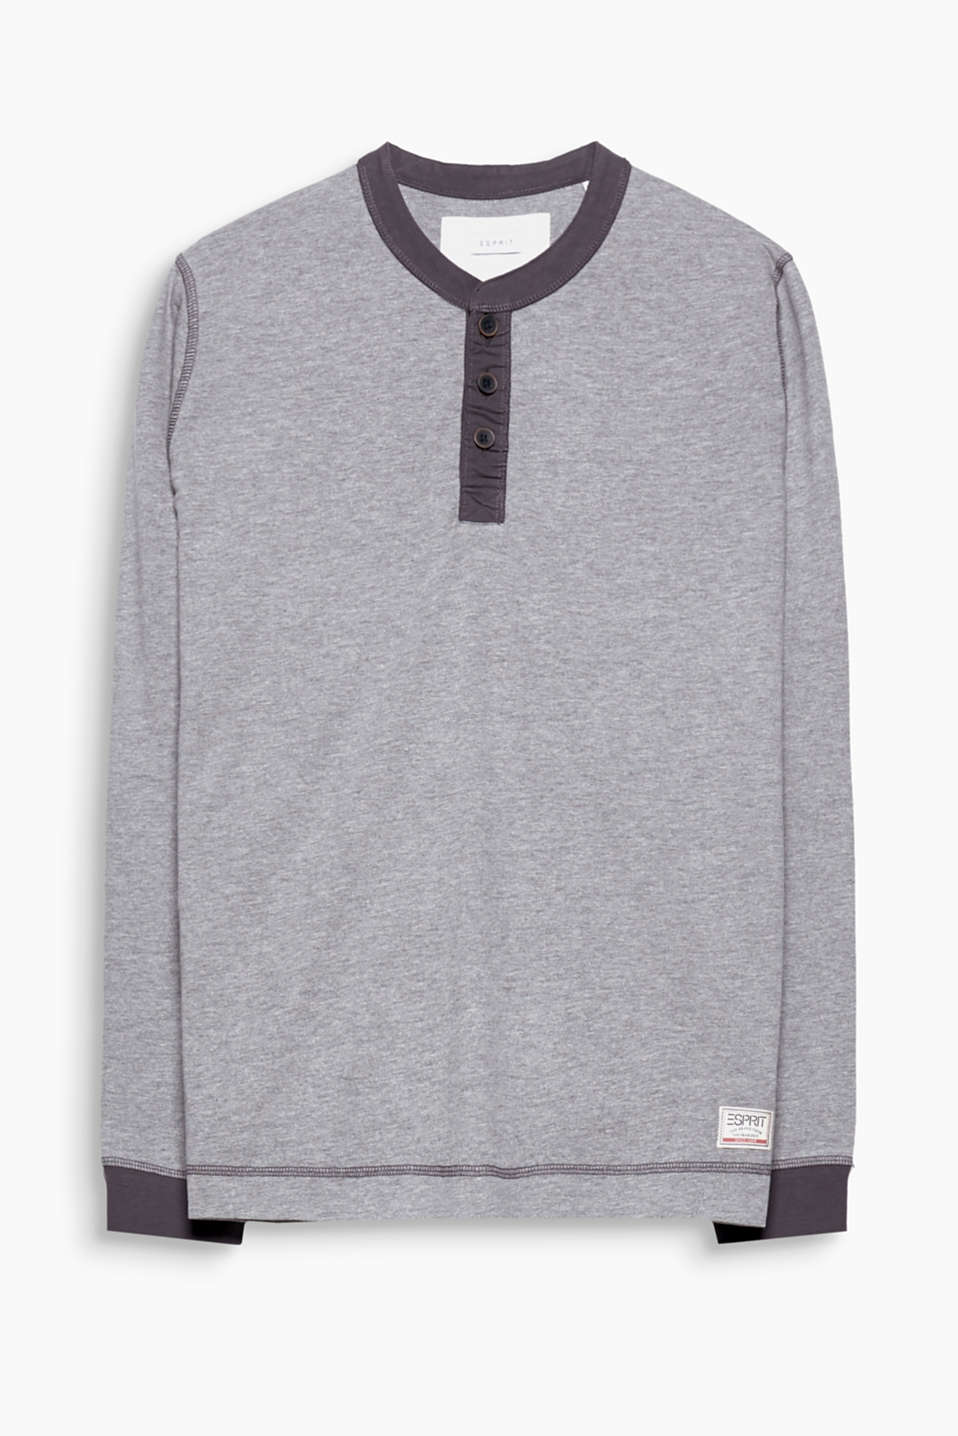 A sporty essential piece, this melange long sleeve jersey top in blended cotton-viscose has a narrow stand-up collar.